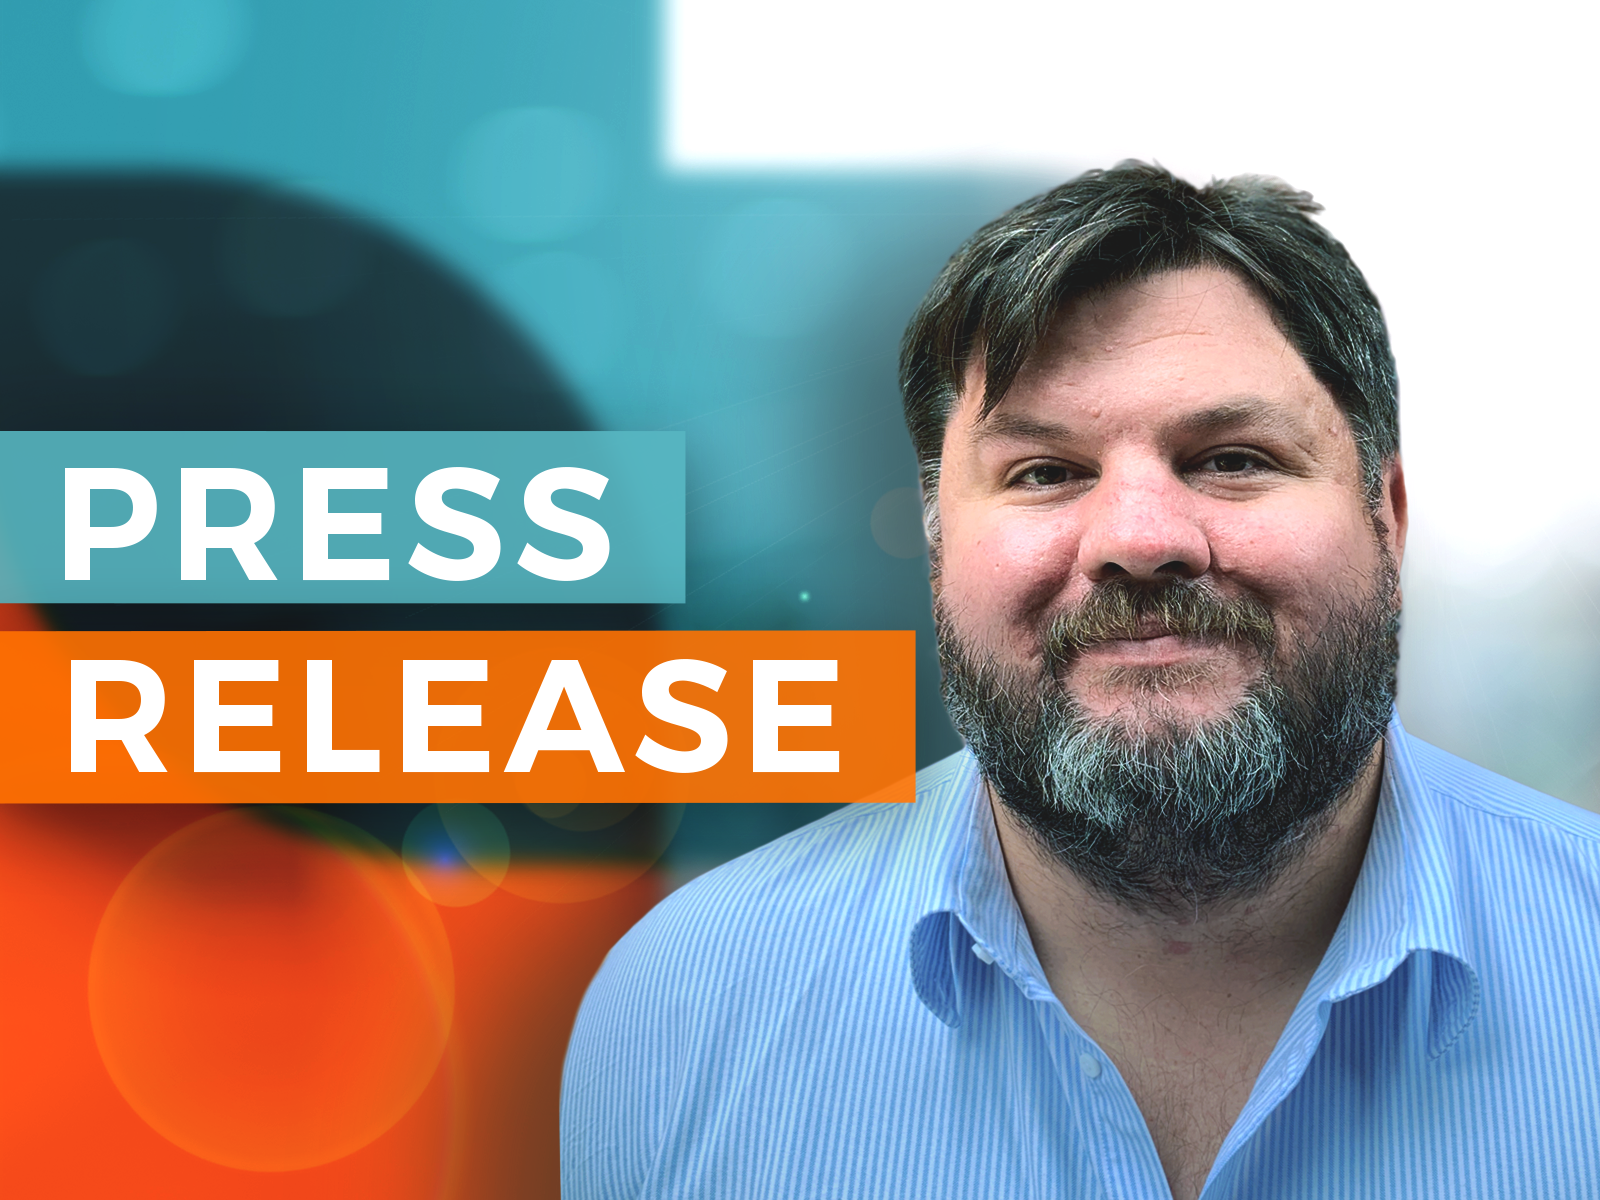 Robert Webster joins InfoSum as Director, Strategy Consulting